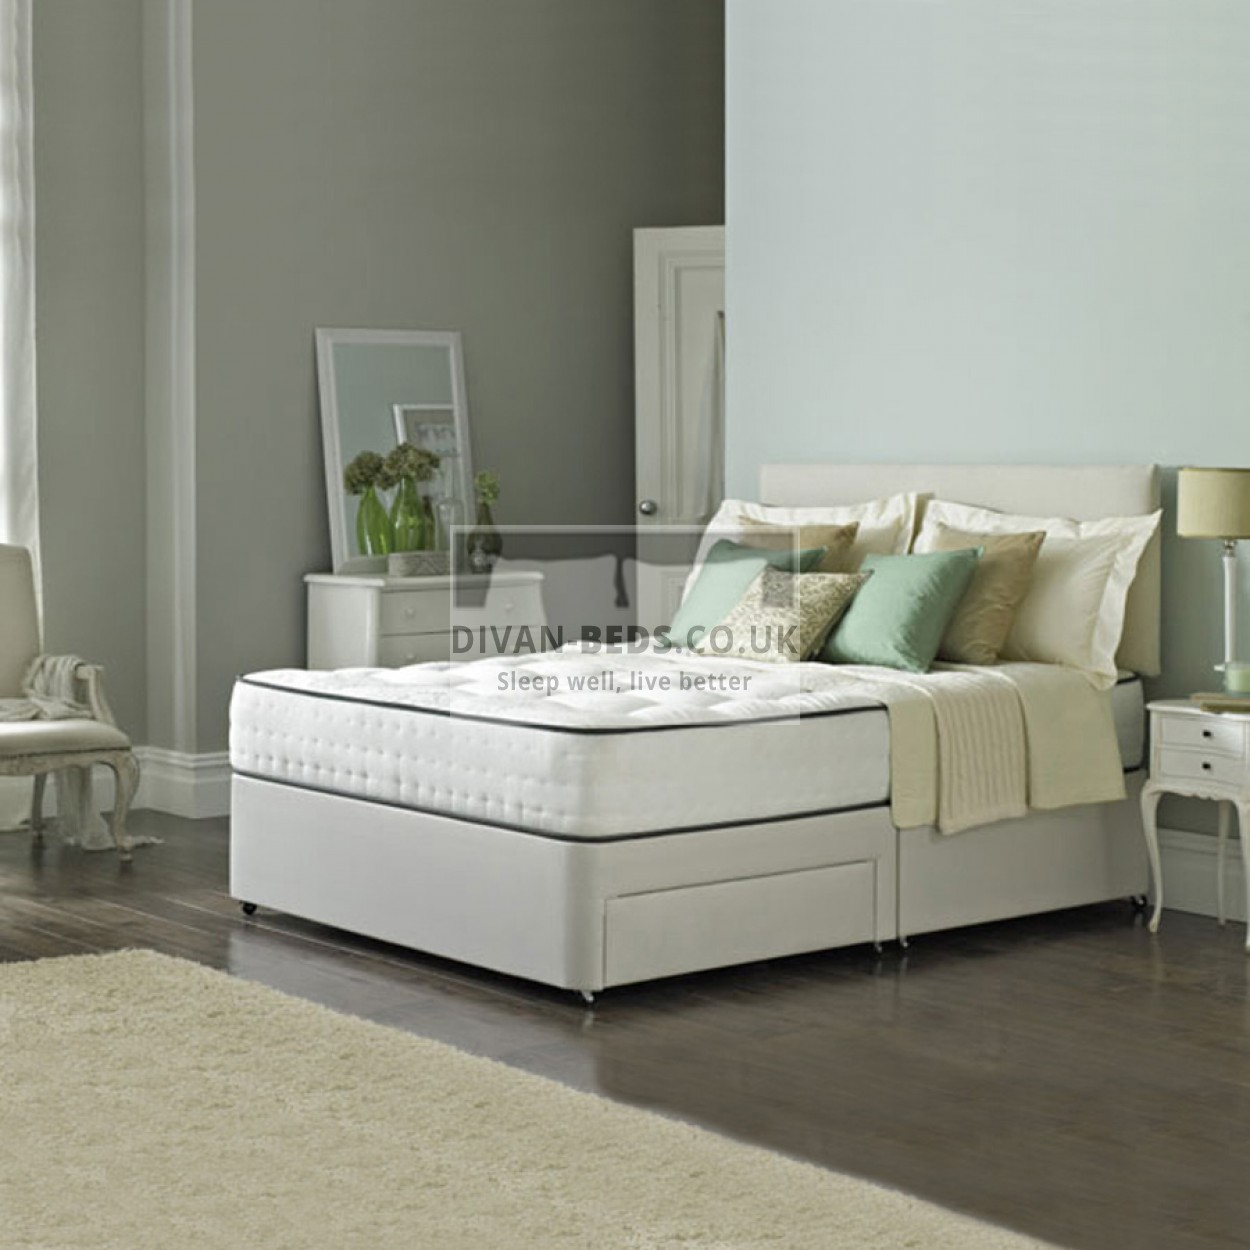 Lambert Divan Fabric Bed With Orthopaedic Spring Memory Foam Mattress Guaranteed Cheapest